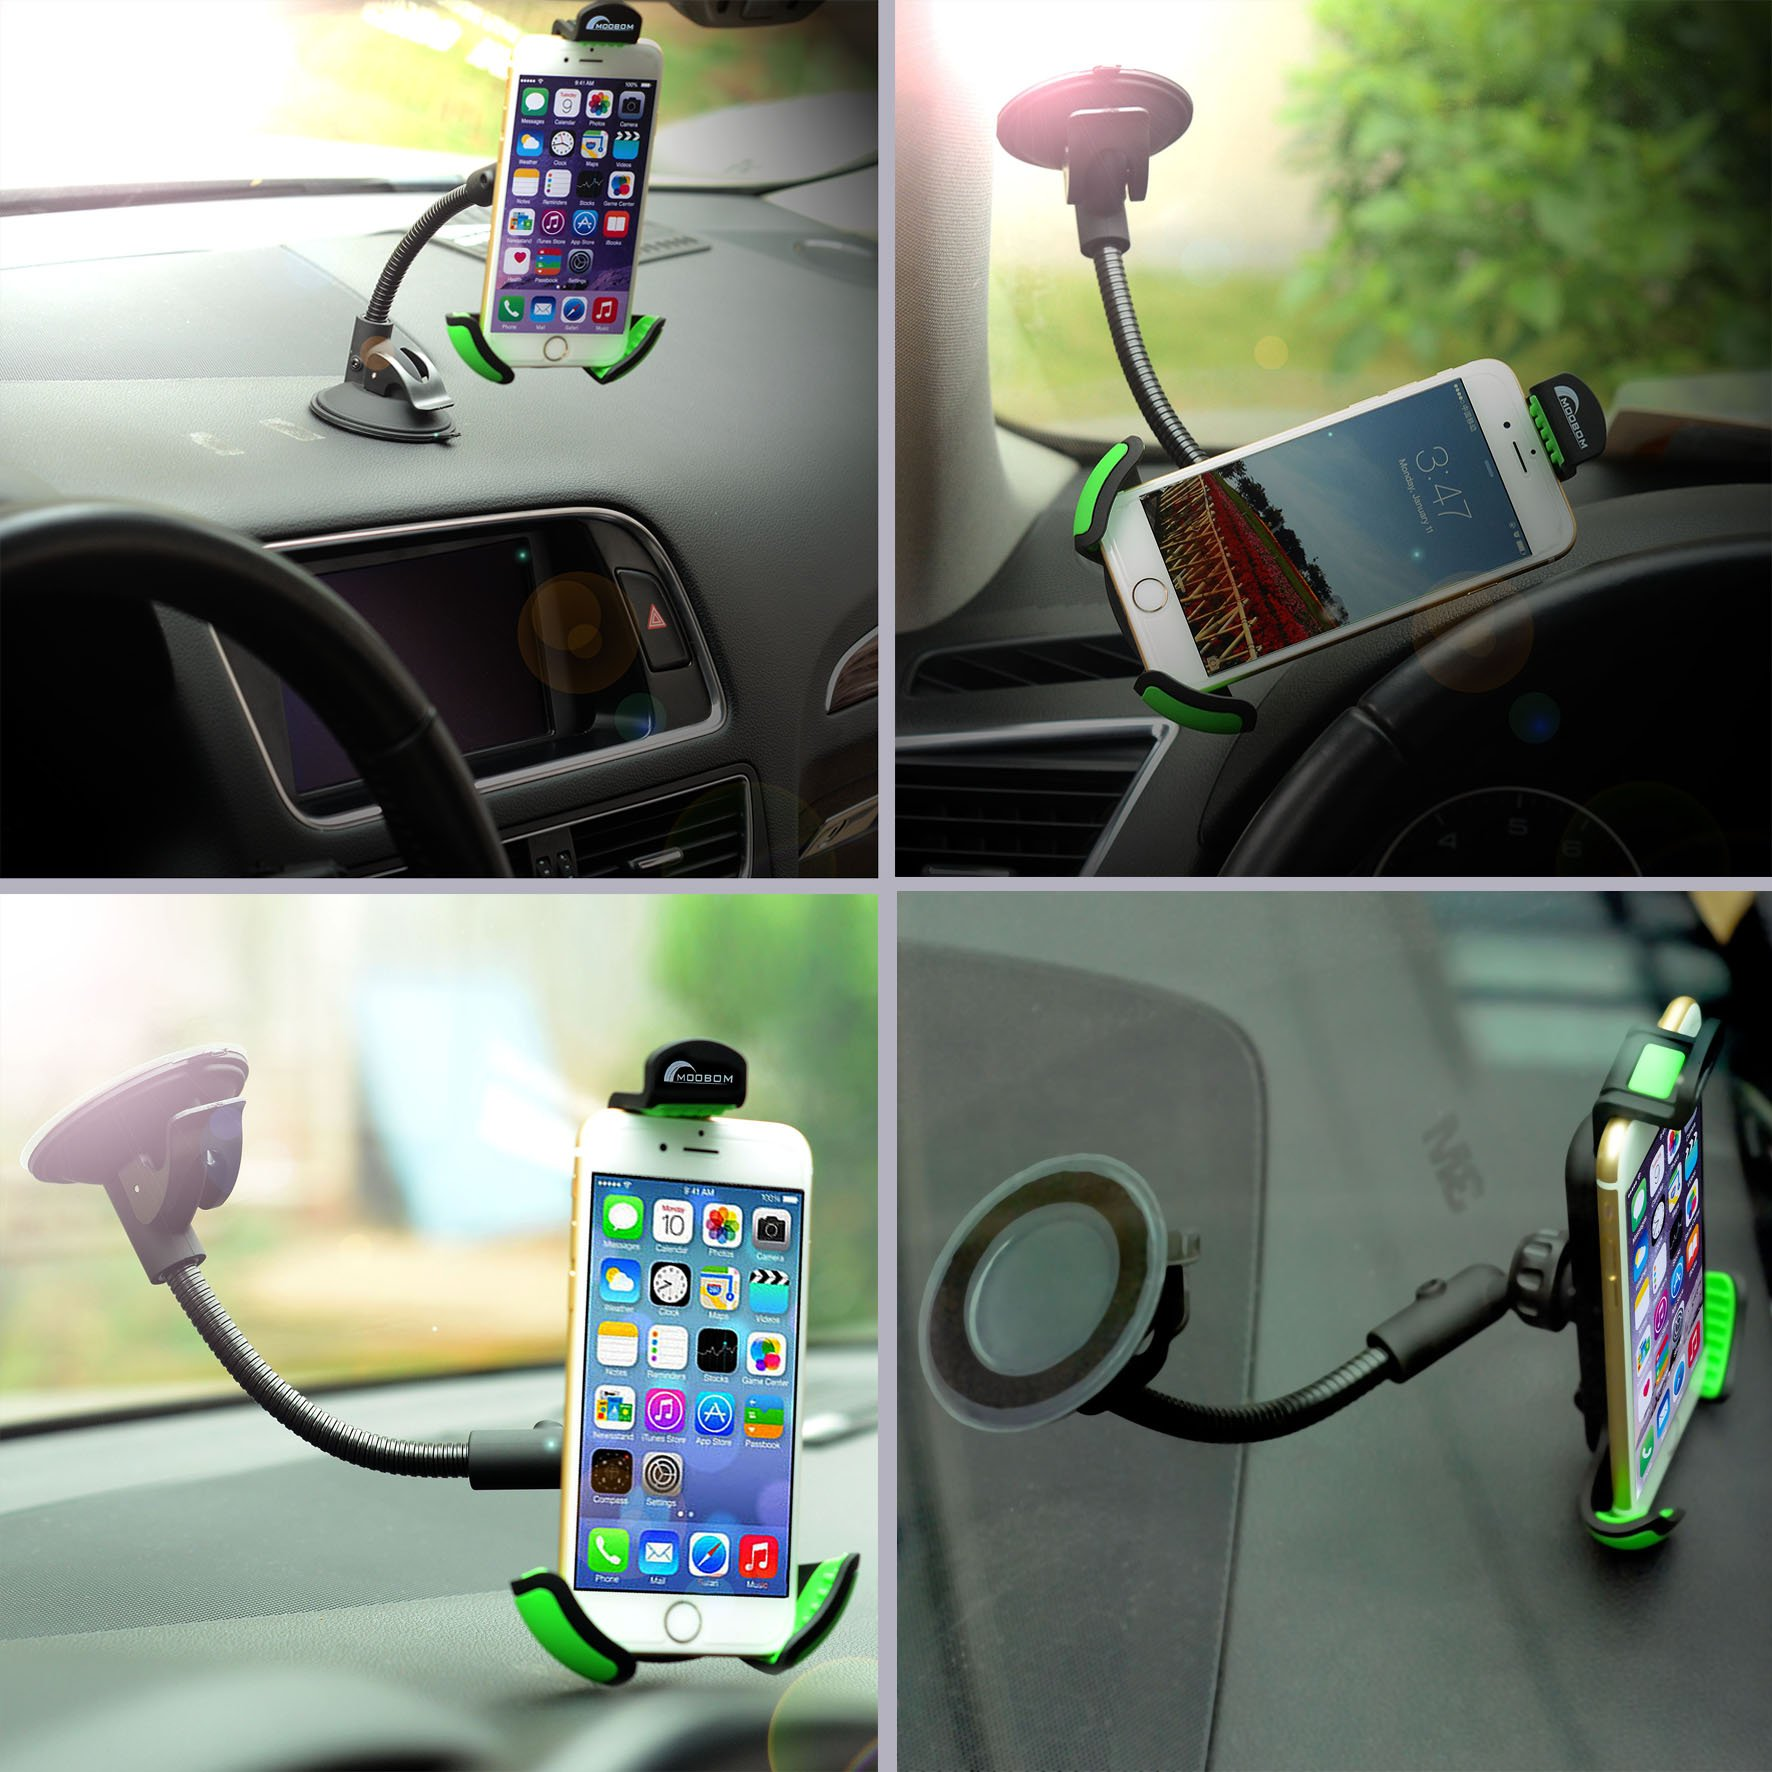 Moobom Car Mount Long Arm Suckers Handsfree Holder With 360 Degree Rotation Suction Cup Cradle on Universal Windowsheild Dashboard for iPhone Samsung Various Smartphones